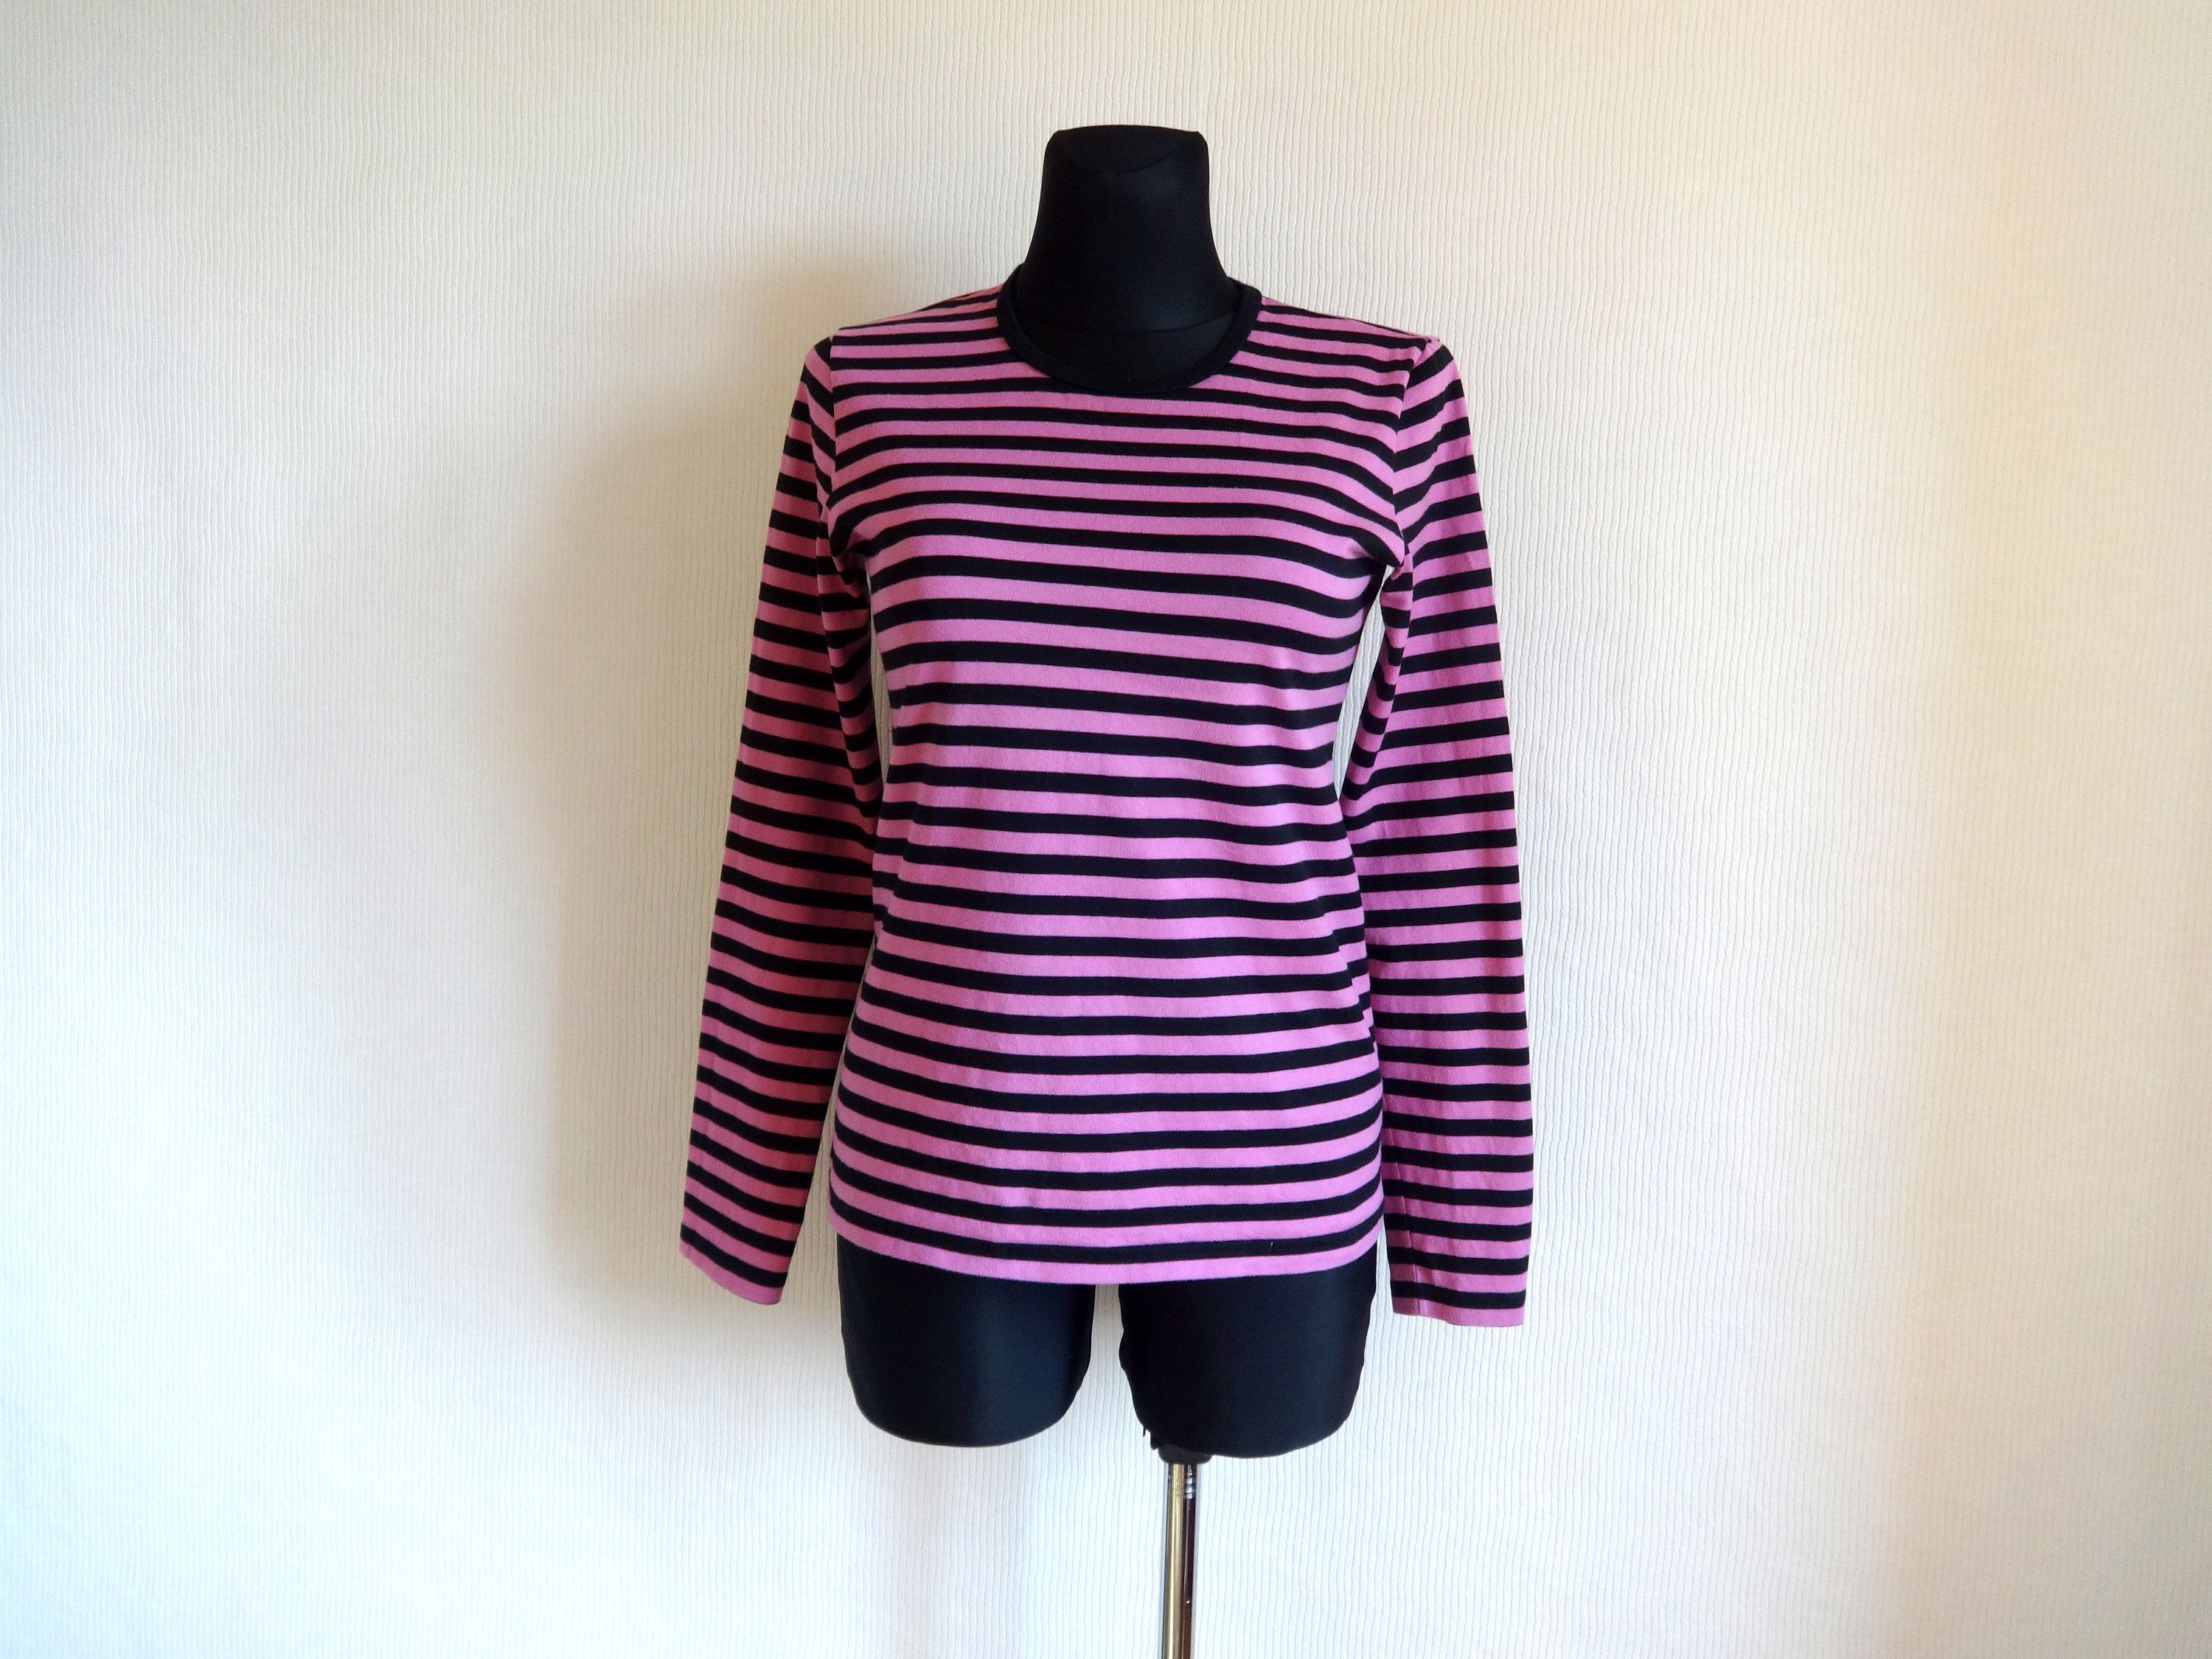 4cf9768d MARIMEKKO Pink & Black Striped Cotton Jersey Shirt Nautical Horizontal  Stripes Finnish Clothing Women's Top Long Sleeve Marimekko Clothing M by ...